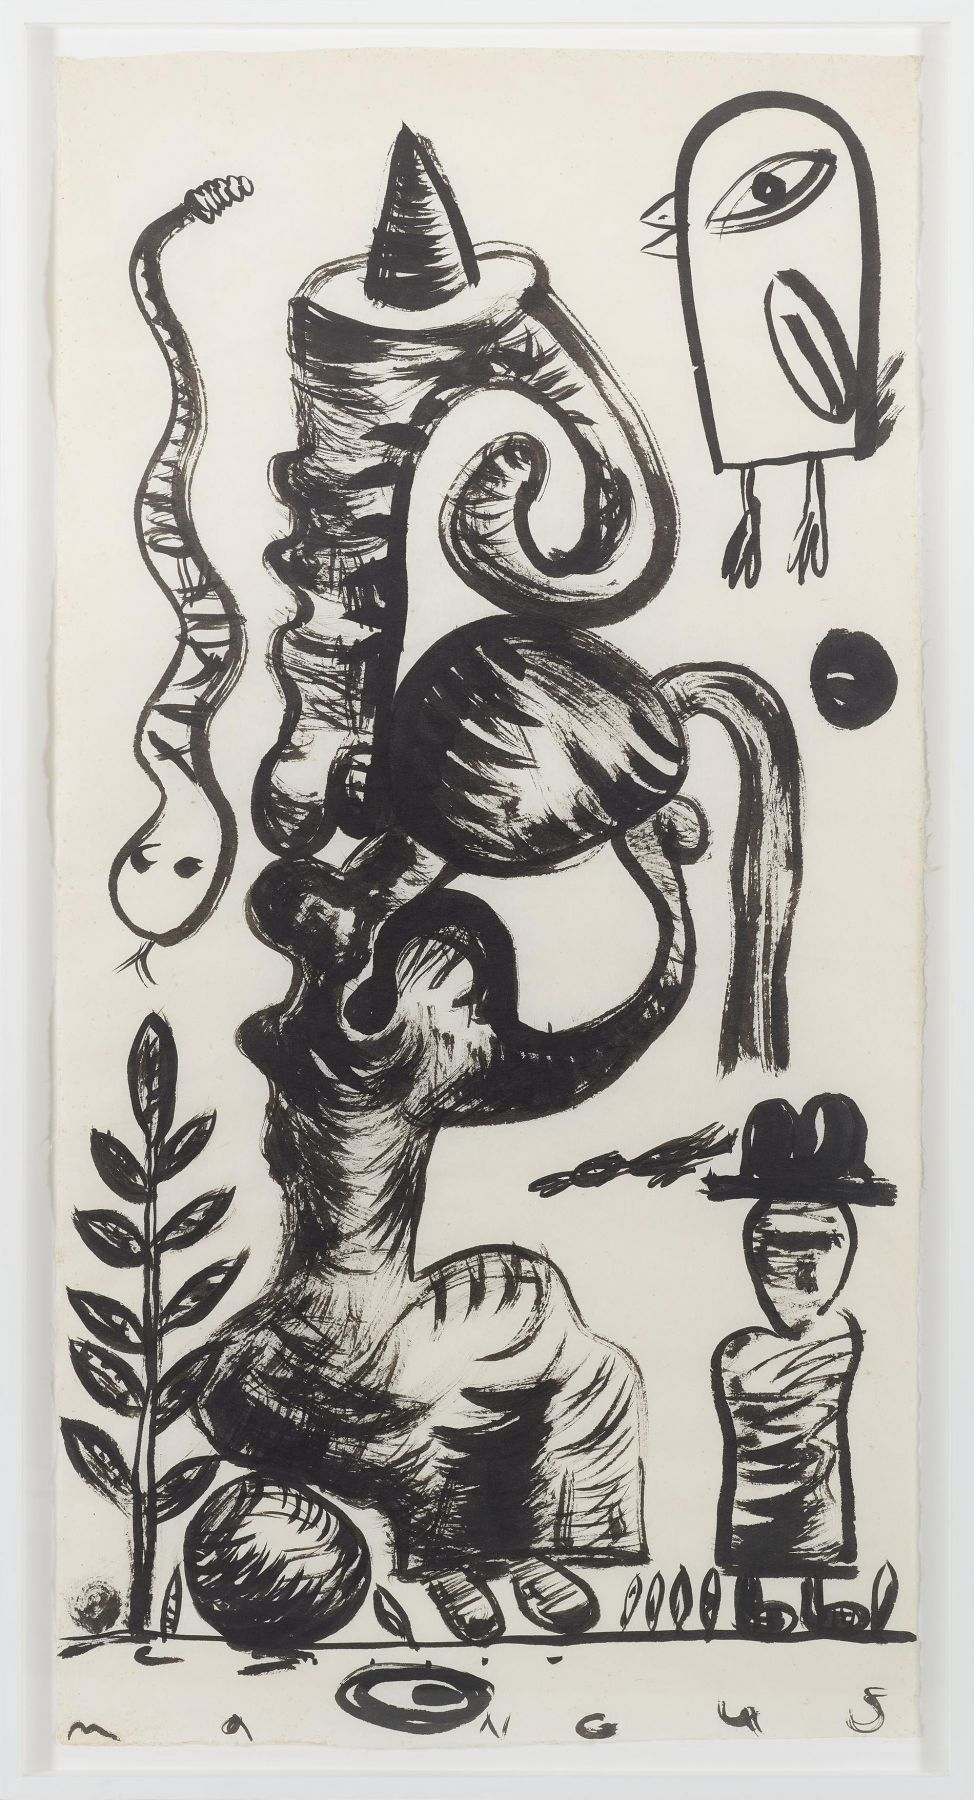 , Life In Suspension, 1989, Ink on mulberry paper, 56 1/2 x 28 3/4 in.